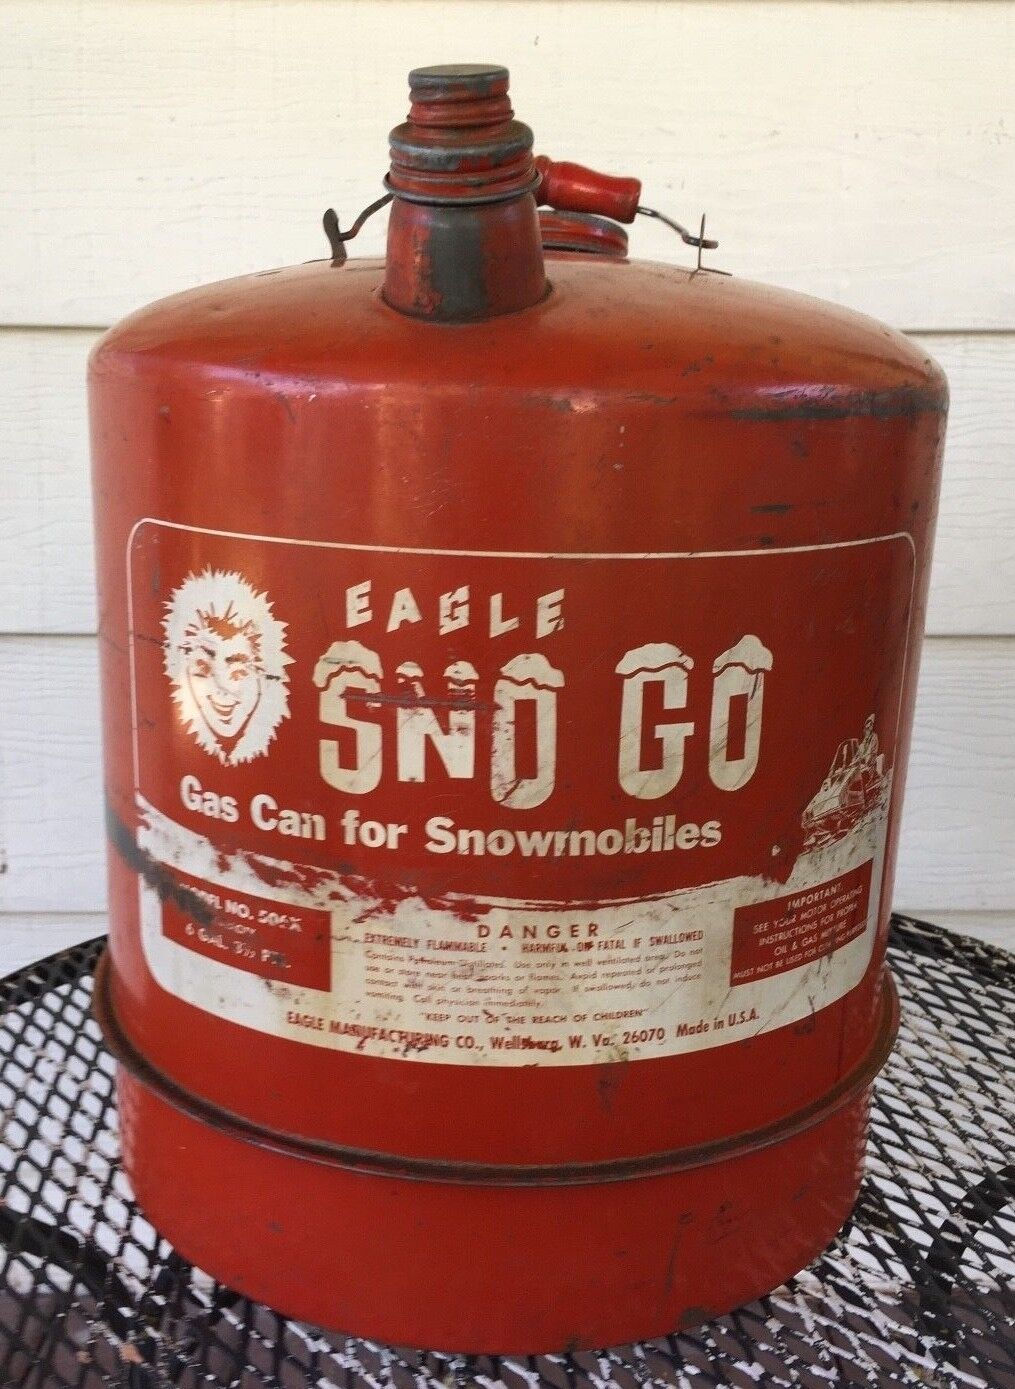 VINTAGE EAGLE  SNO GO MODEL 506X 6 GAL 3 1 2 PT WOOD HANDLE SNOWMOBILE GAS CAN  the best after-sale service